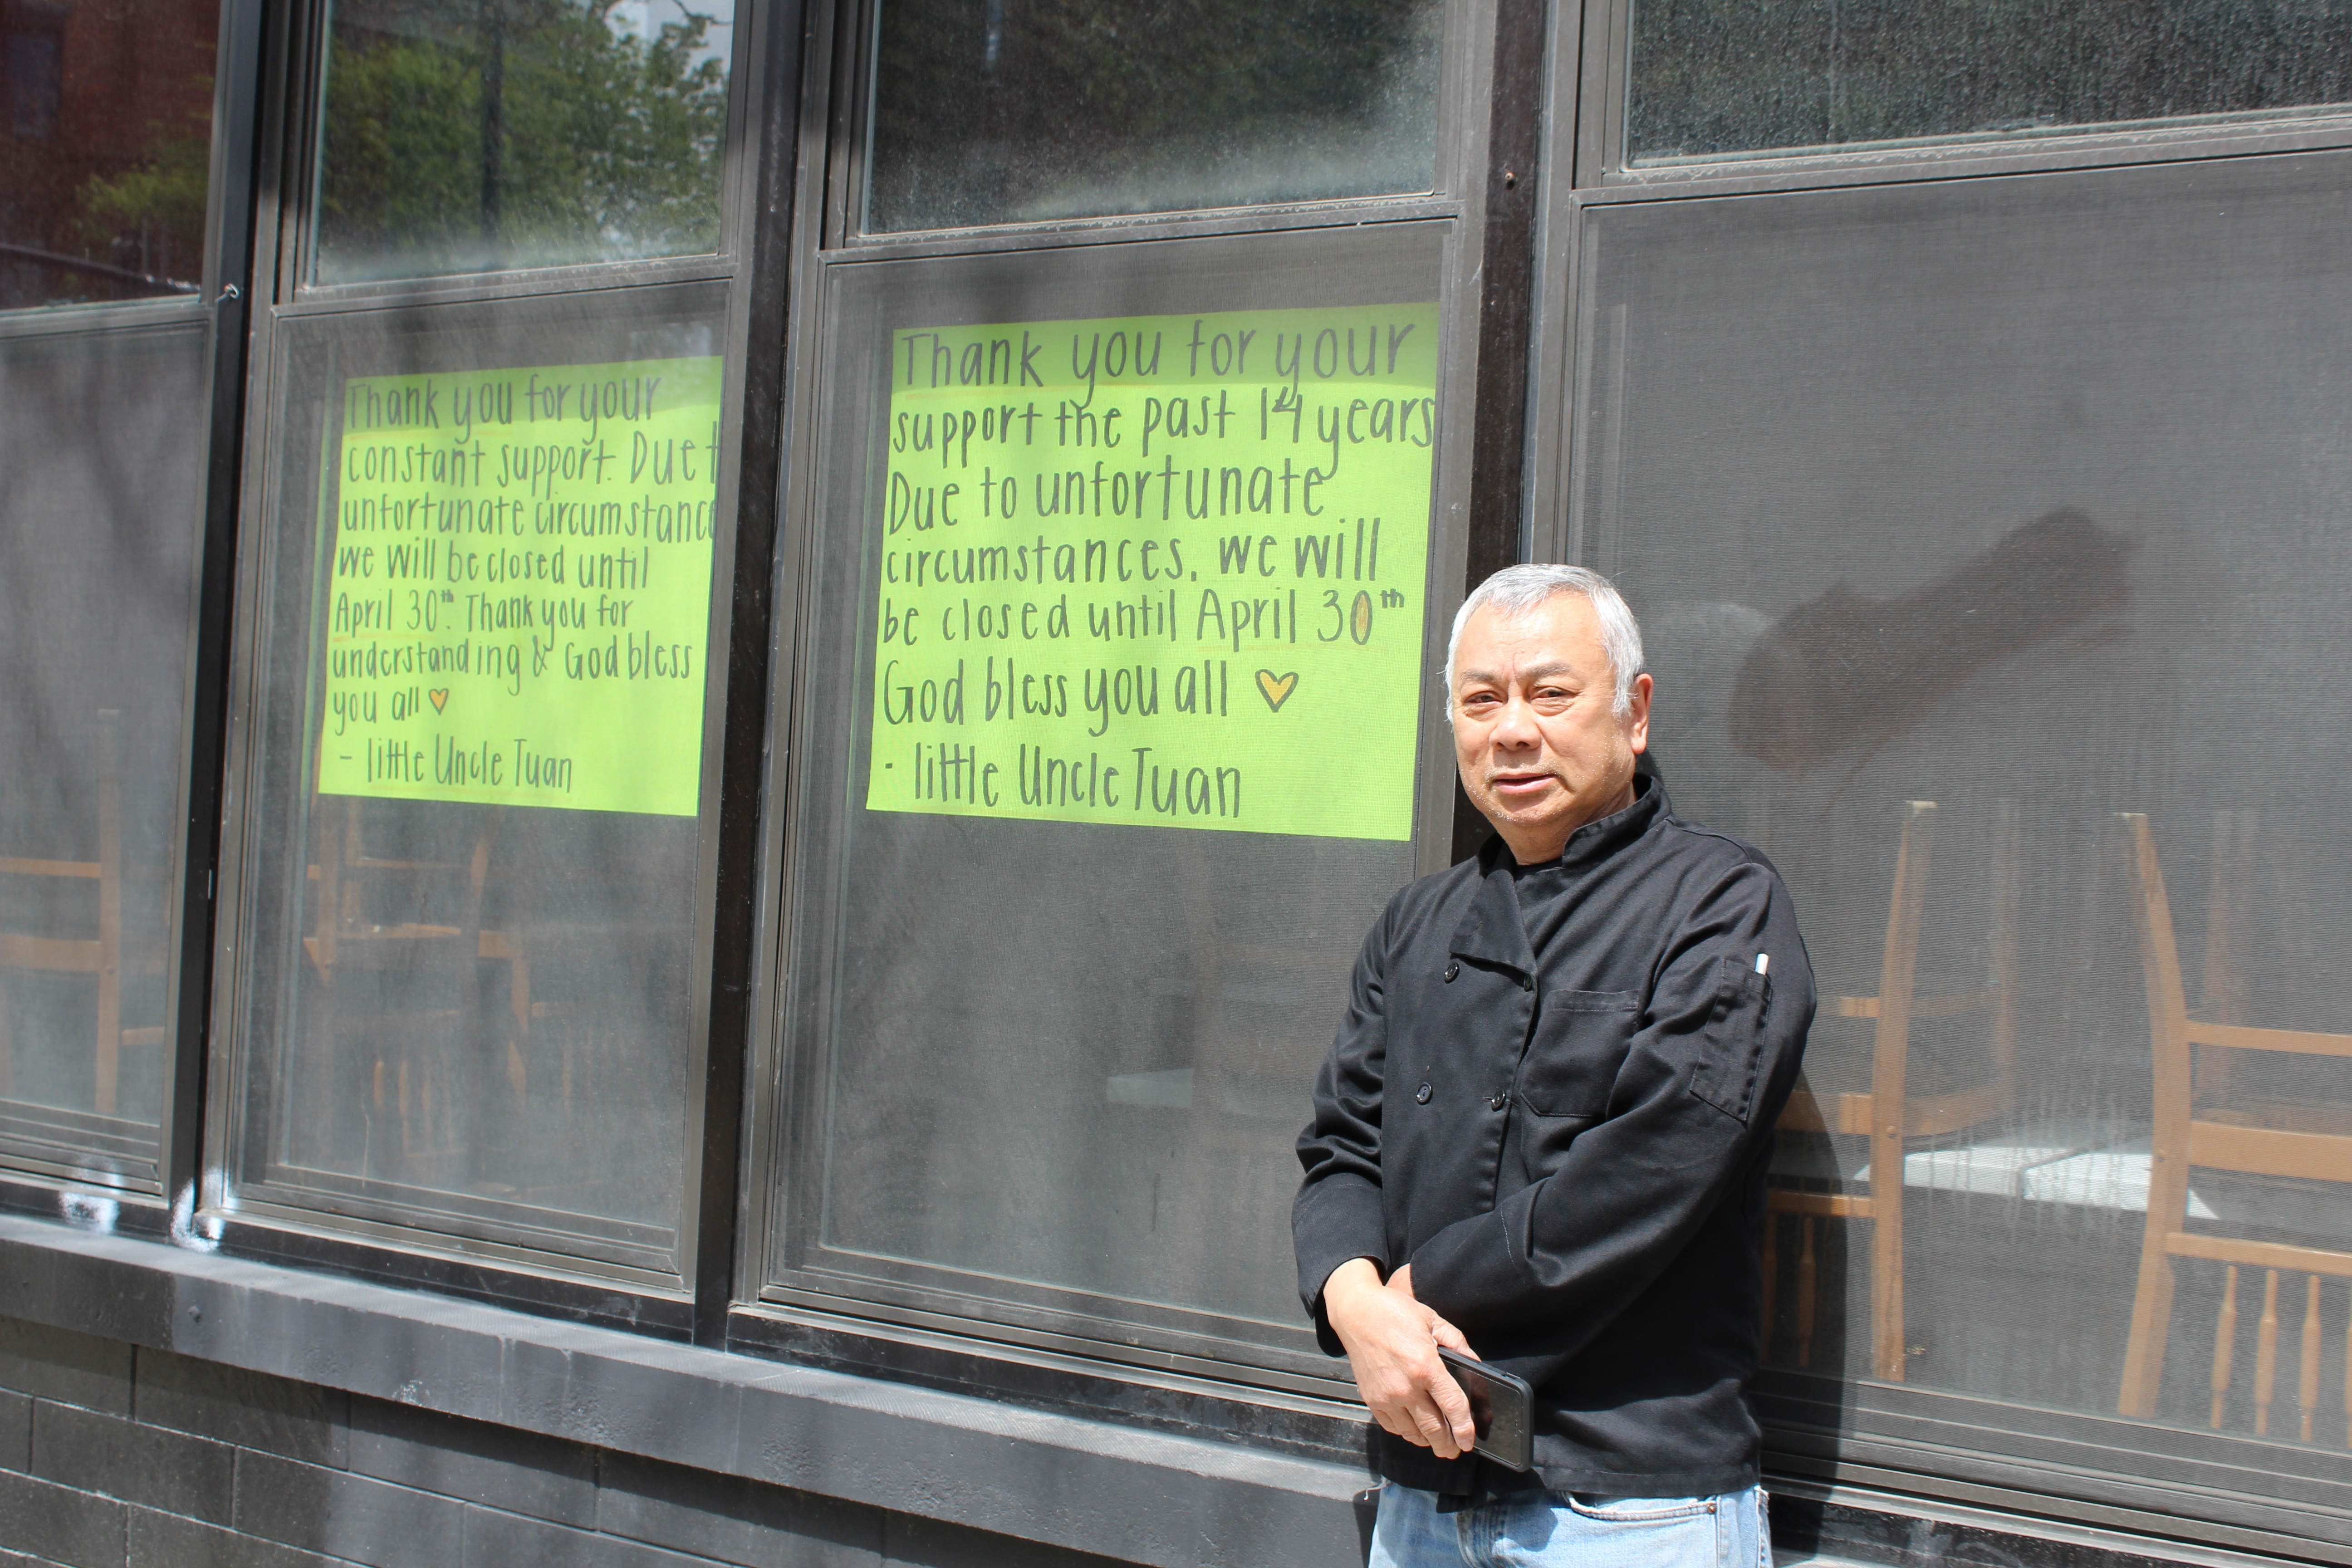 Tuan Nguyen outside of Simply It, a Vietnamese restaurant he opened in Lincoln Park in 2006 that was unable to make it through the coronavirus pandemic.